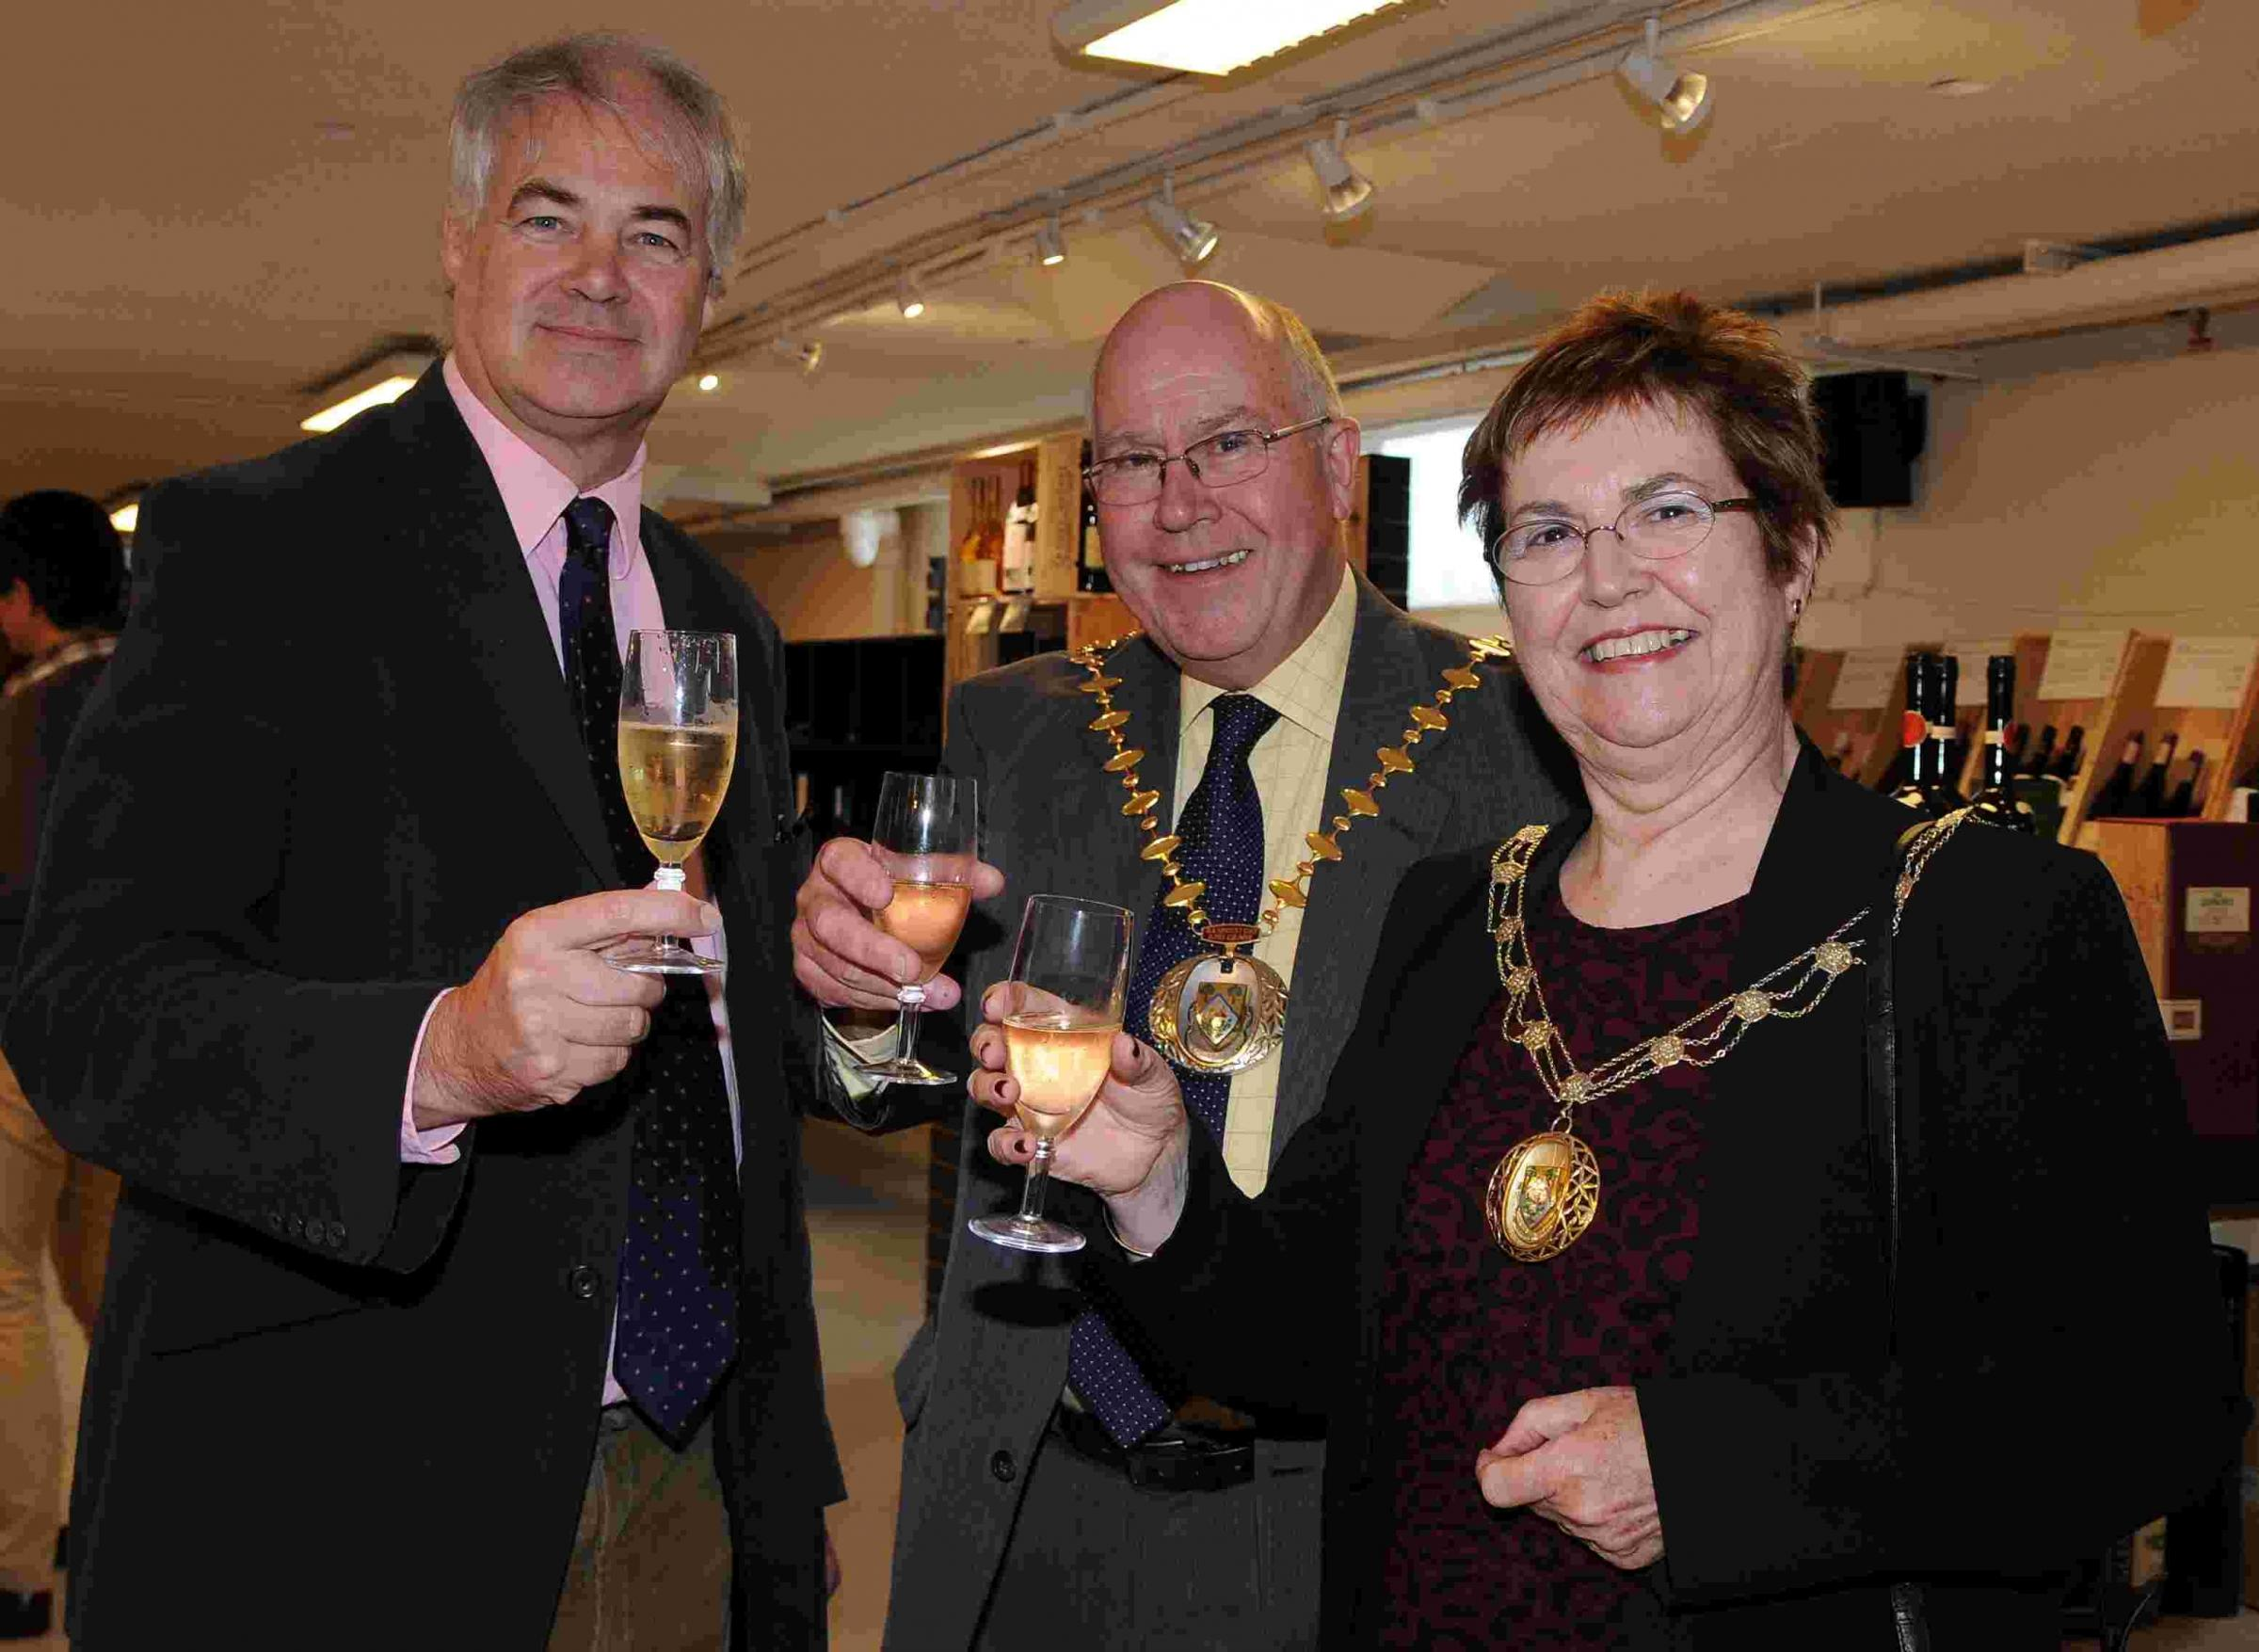 Berry Bros & Rudd chairman Simon Berry, with the Basingstoke and Deane Mayor and Mayoress, Cllr Roger Gardiner and Tricia Gardiner